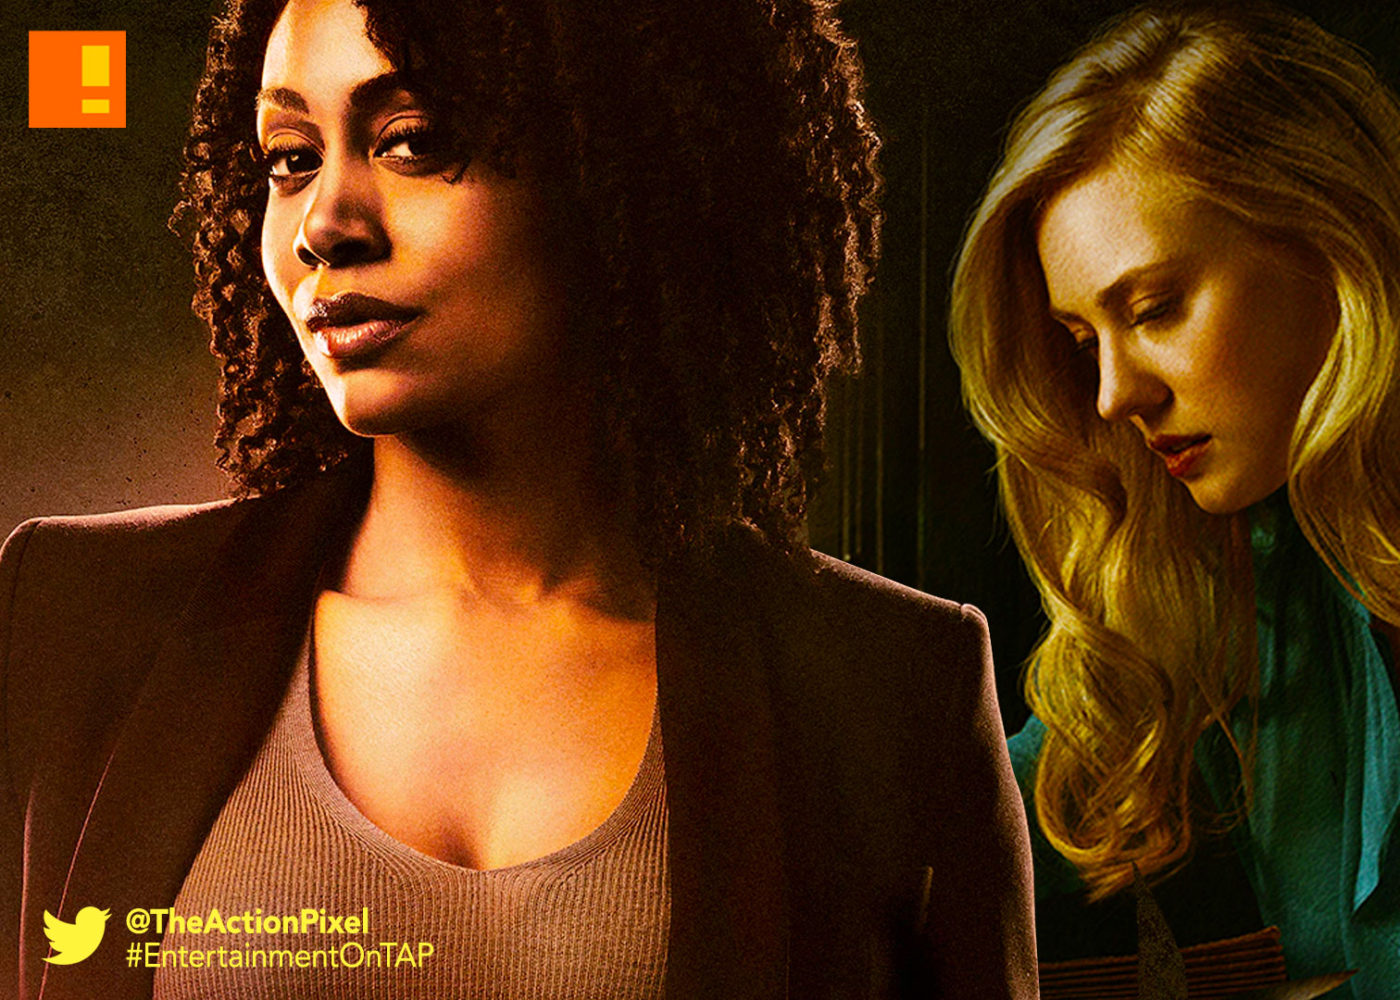 misty Knight, Karen page, the action pixel, entertainment on tap, the action pixel, defenders, marvel comics, marvel, netflix